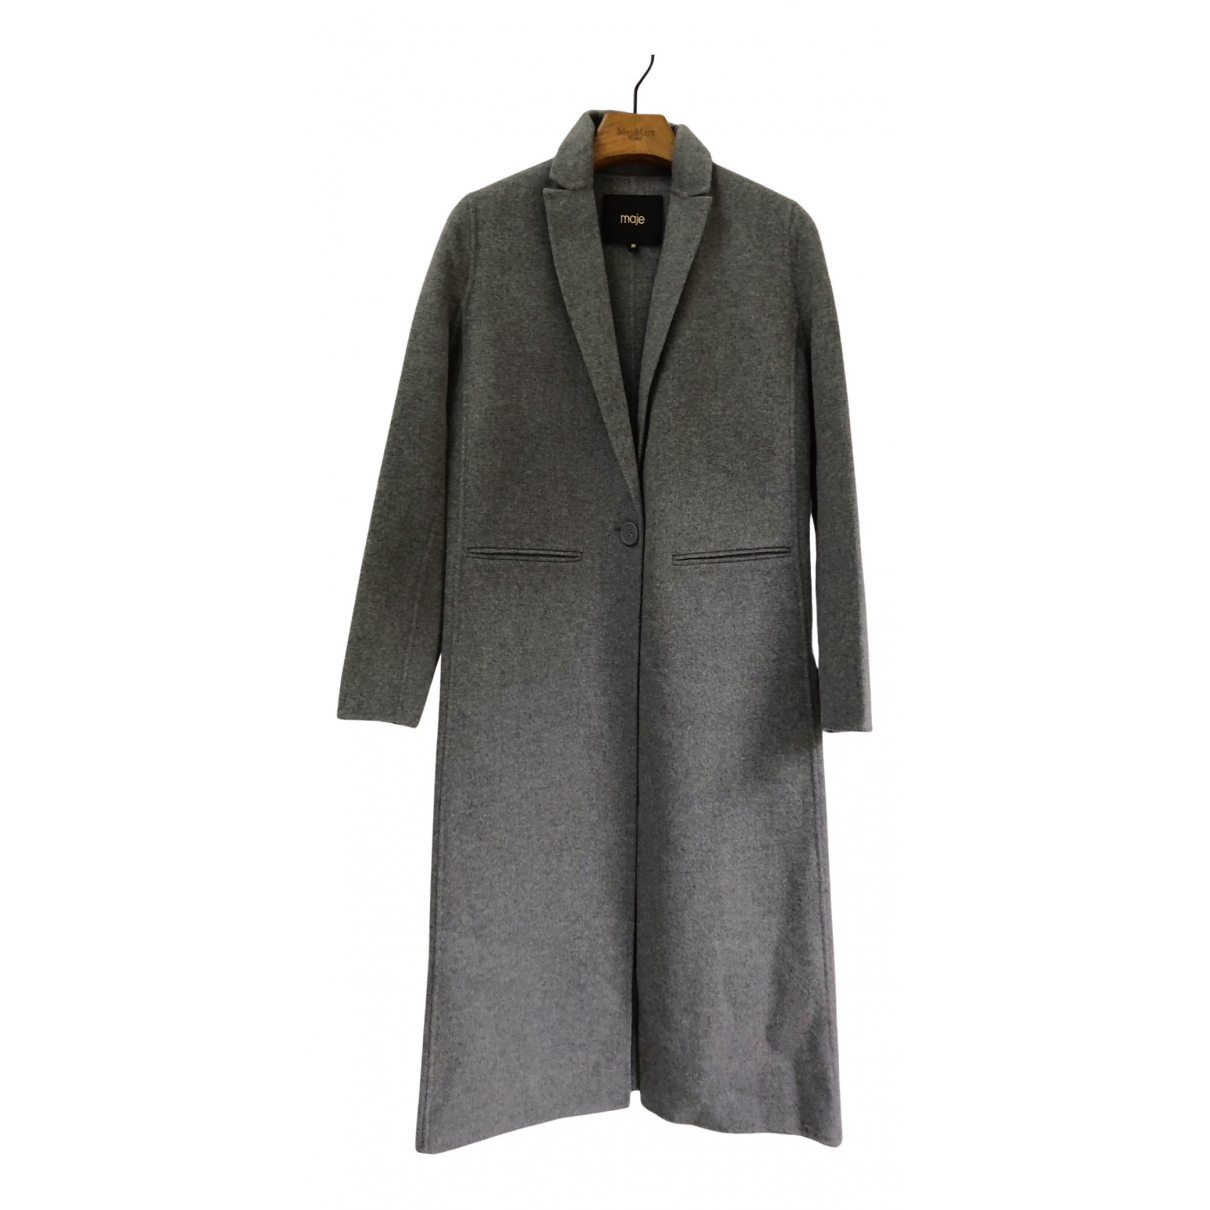 Maje Spring Summer 2019 Grey coat for Women 38 FR